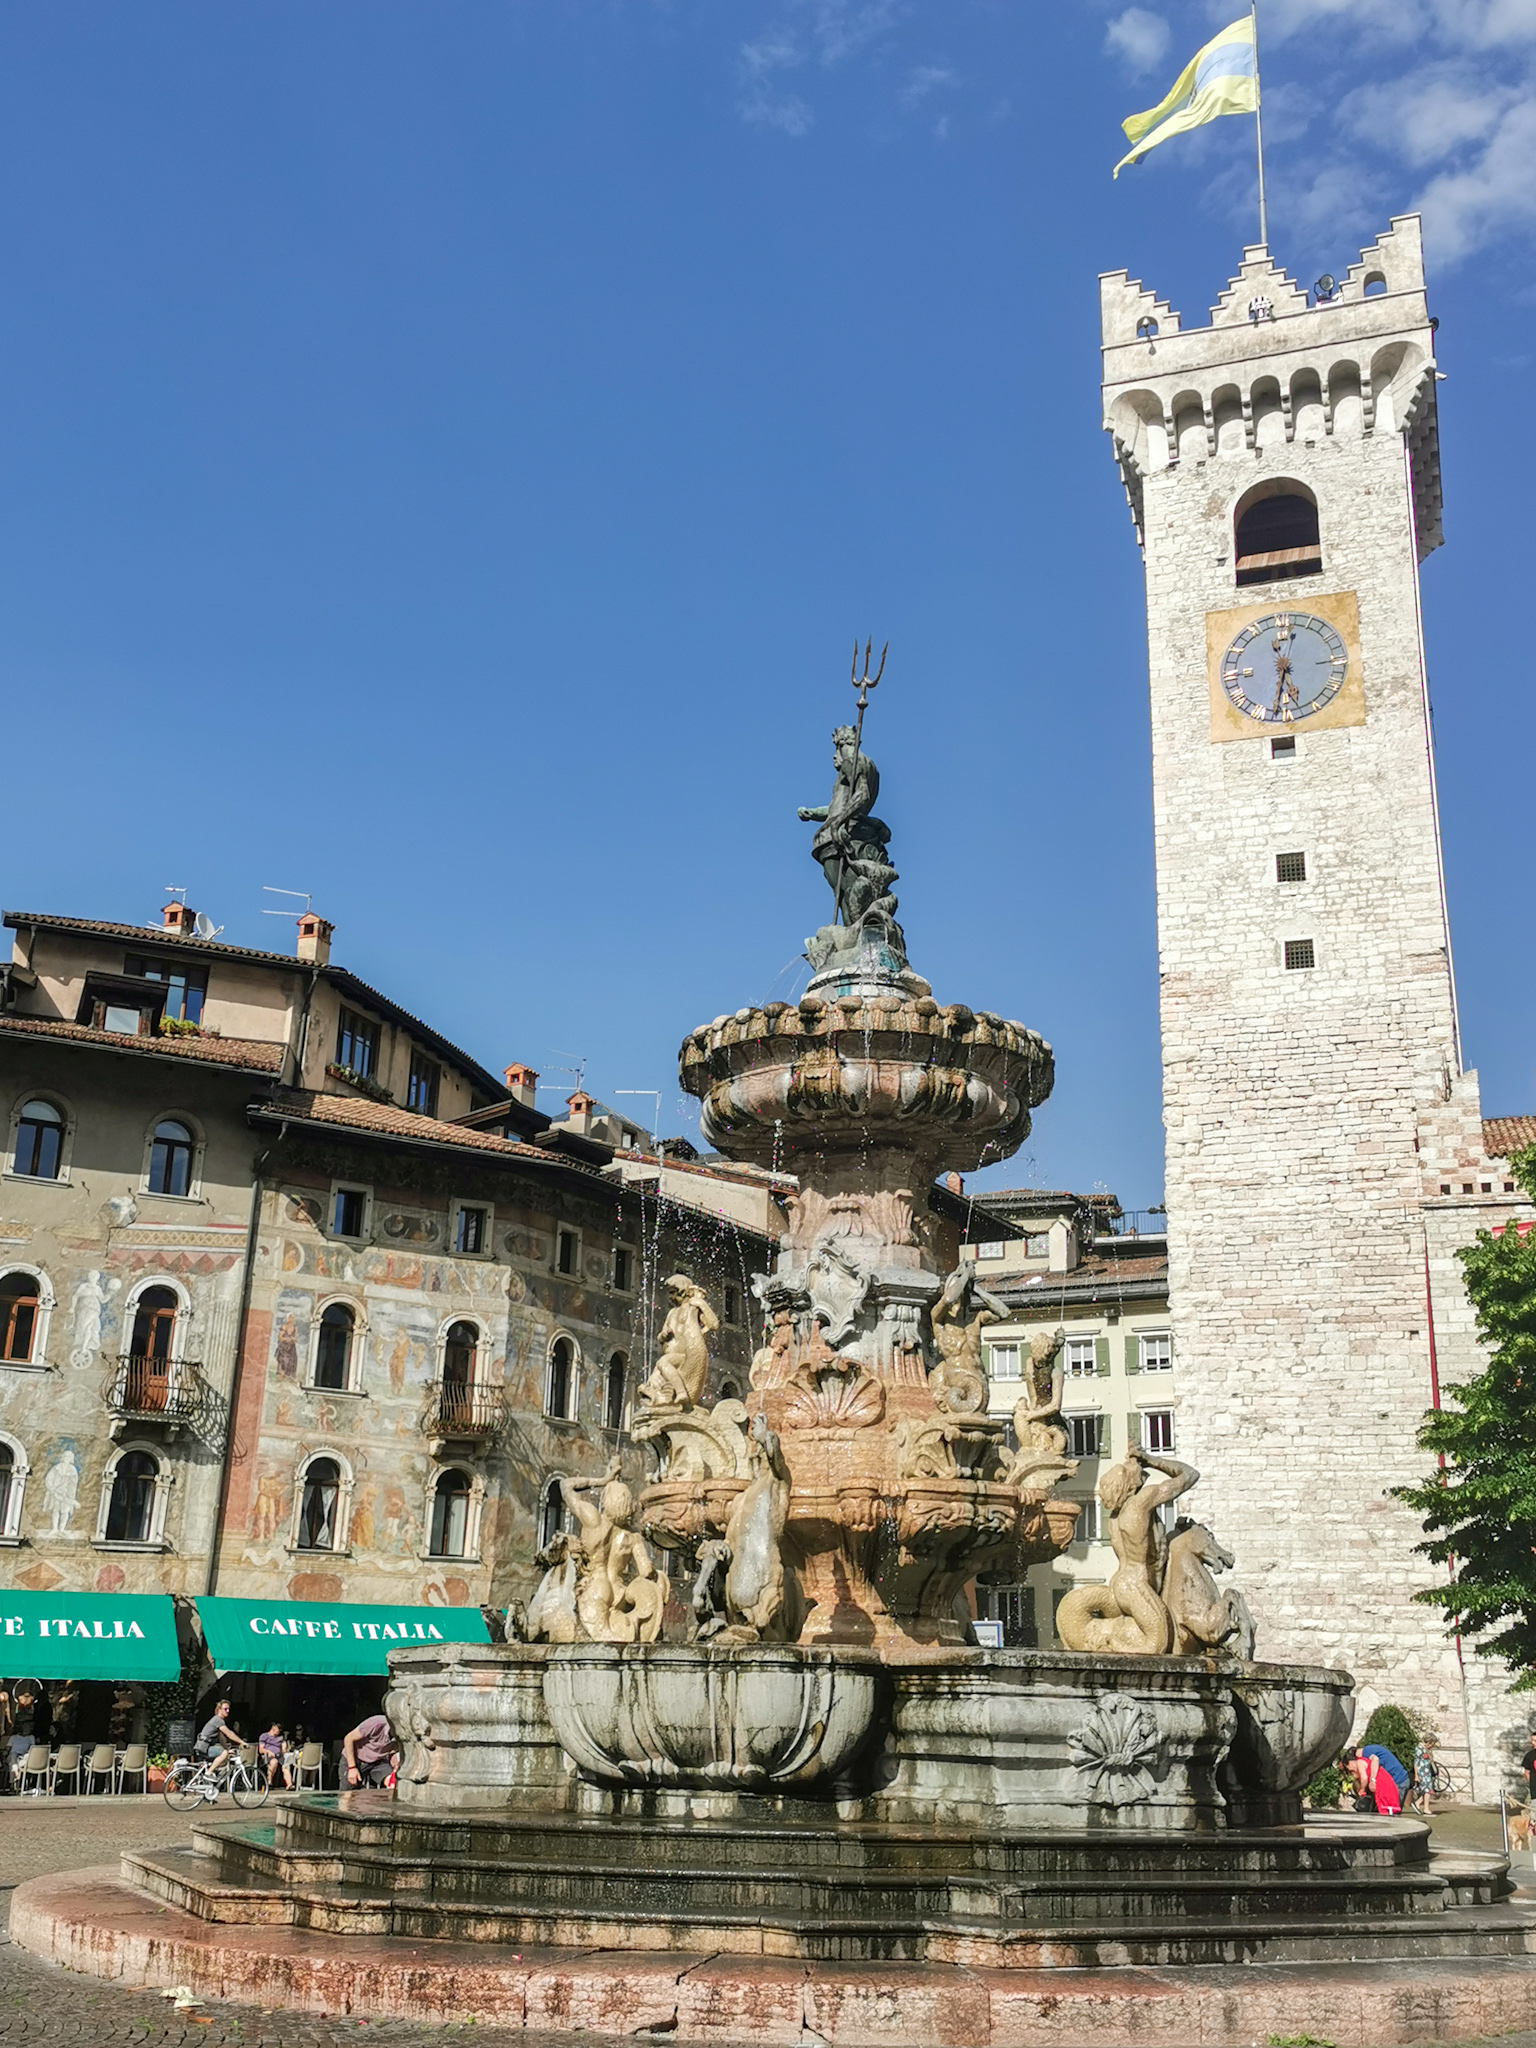 The Fountain of Neptune in Trento